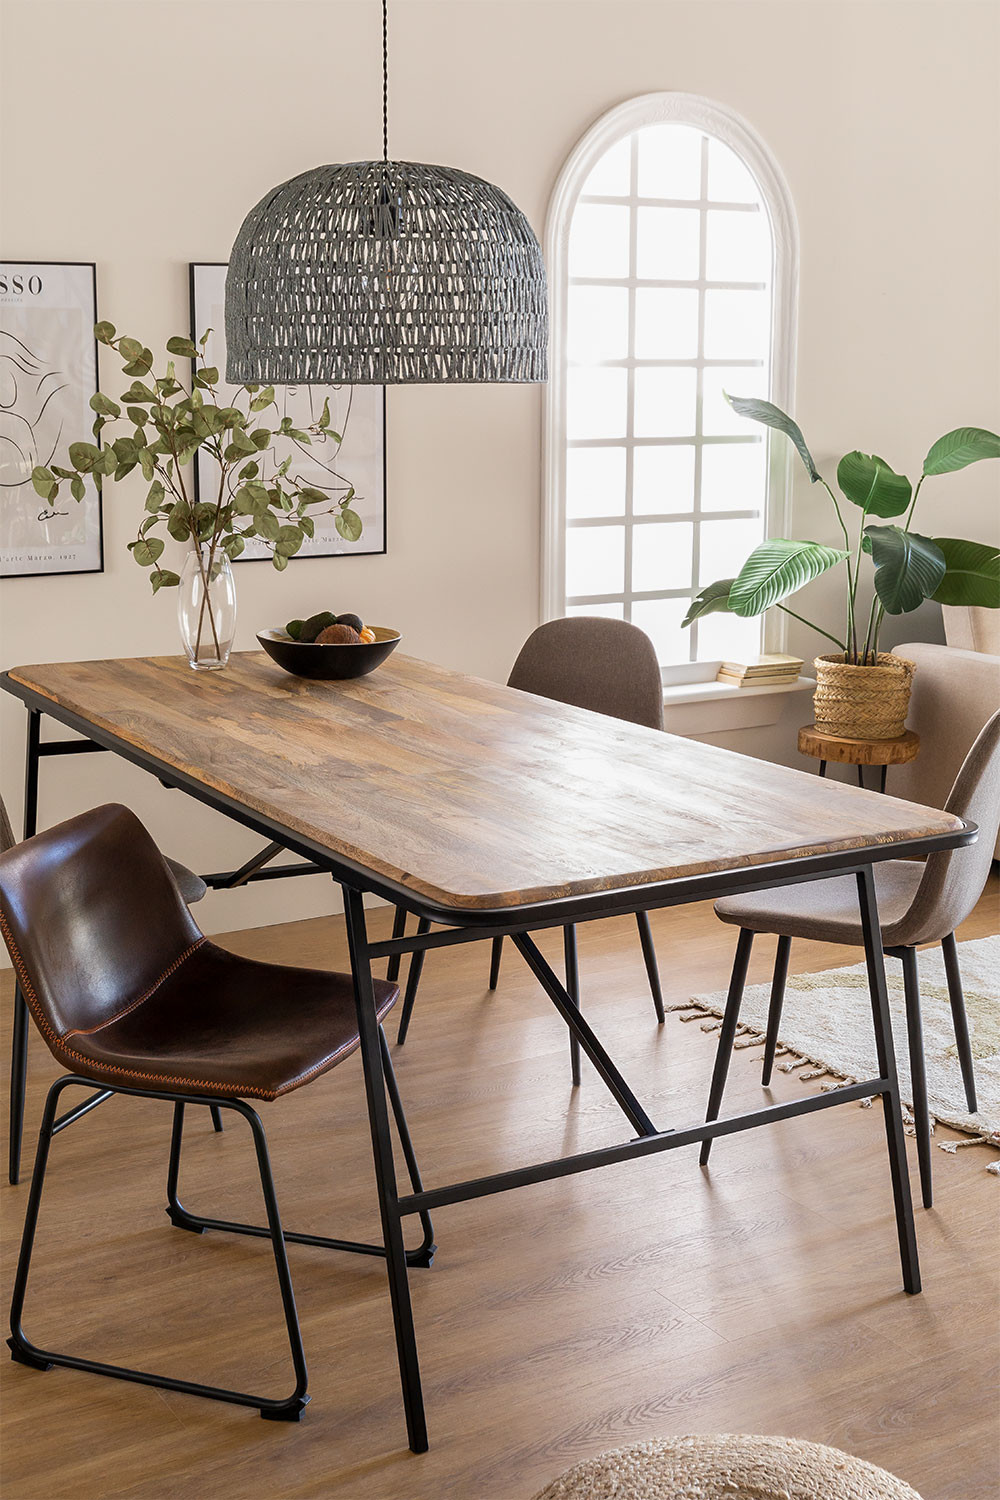 Rectangular Wood Dining Table (200x91cm) Nathar Style, gallery image 1